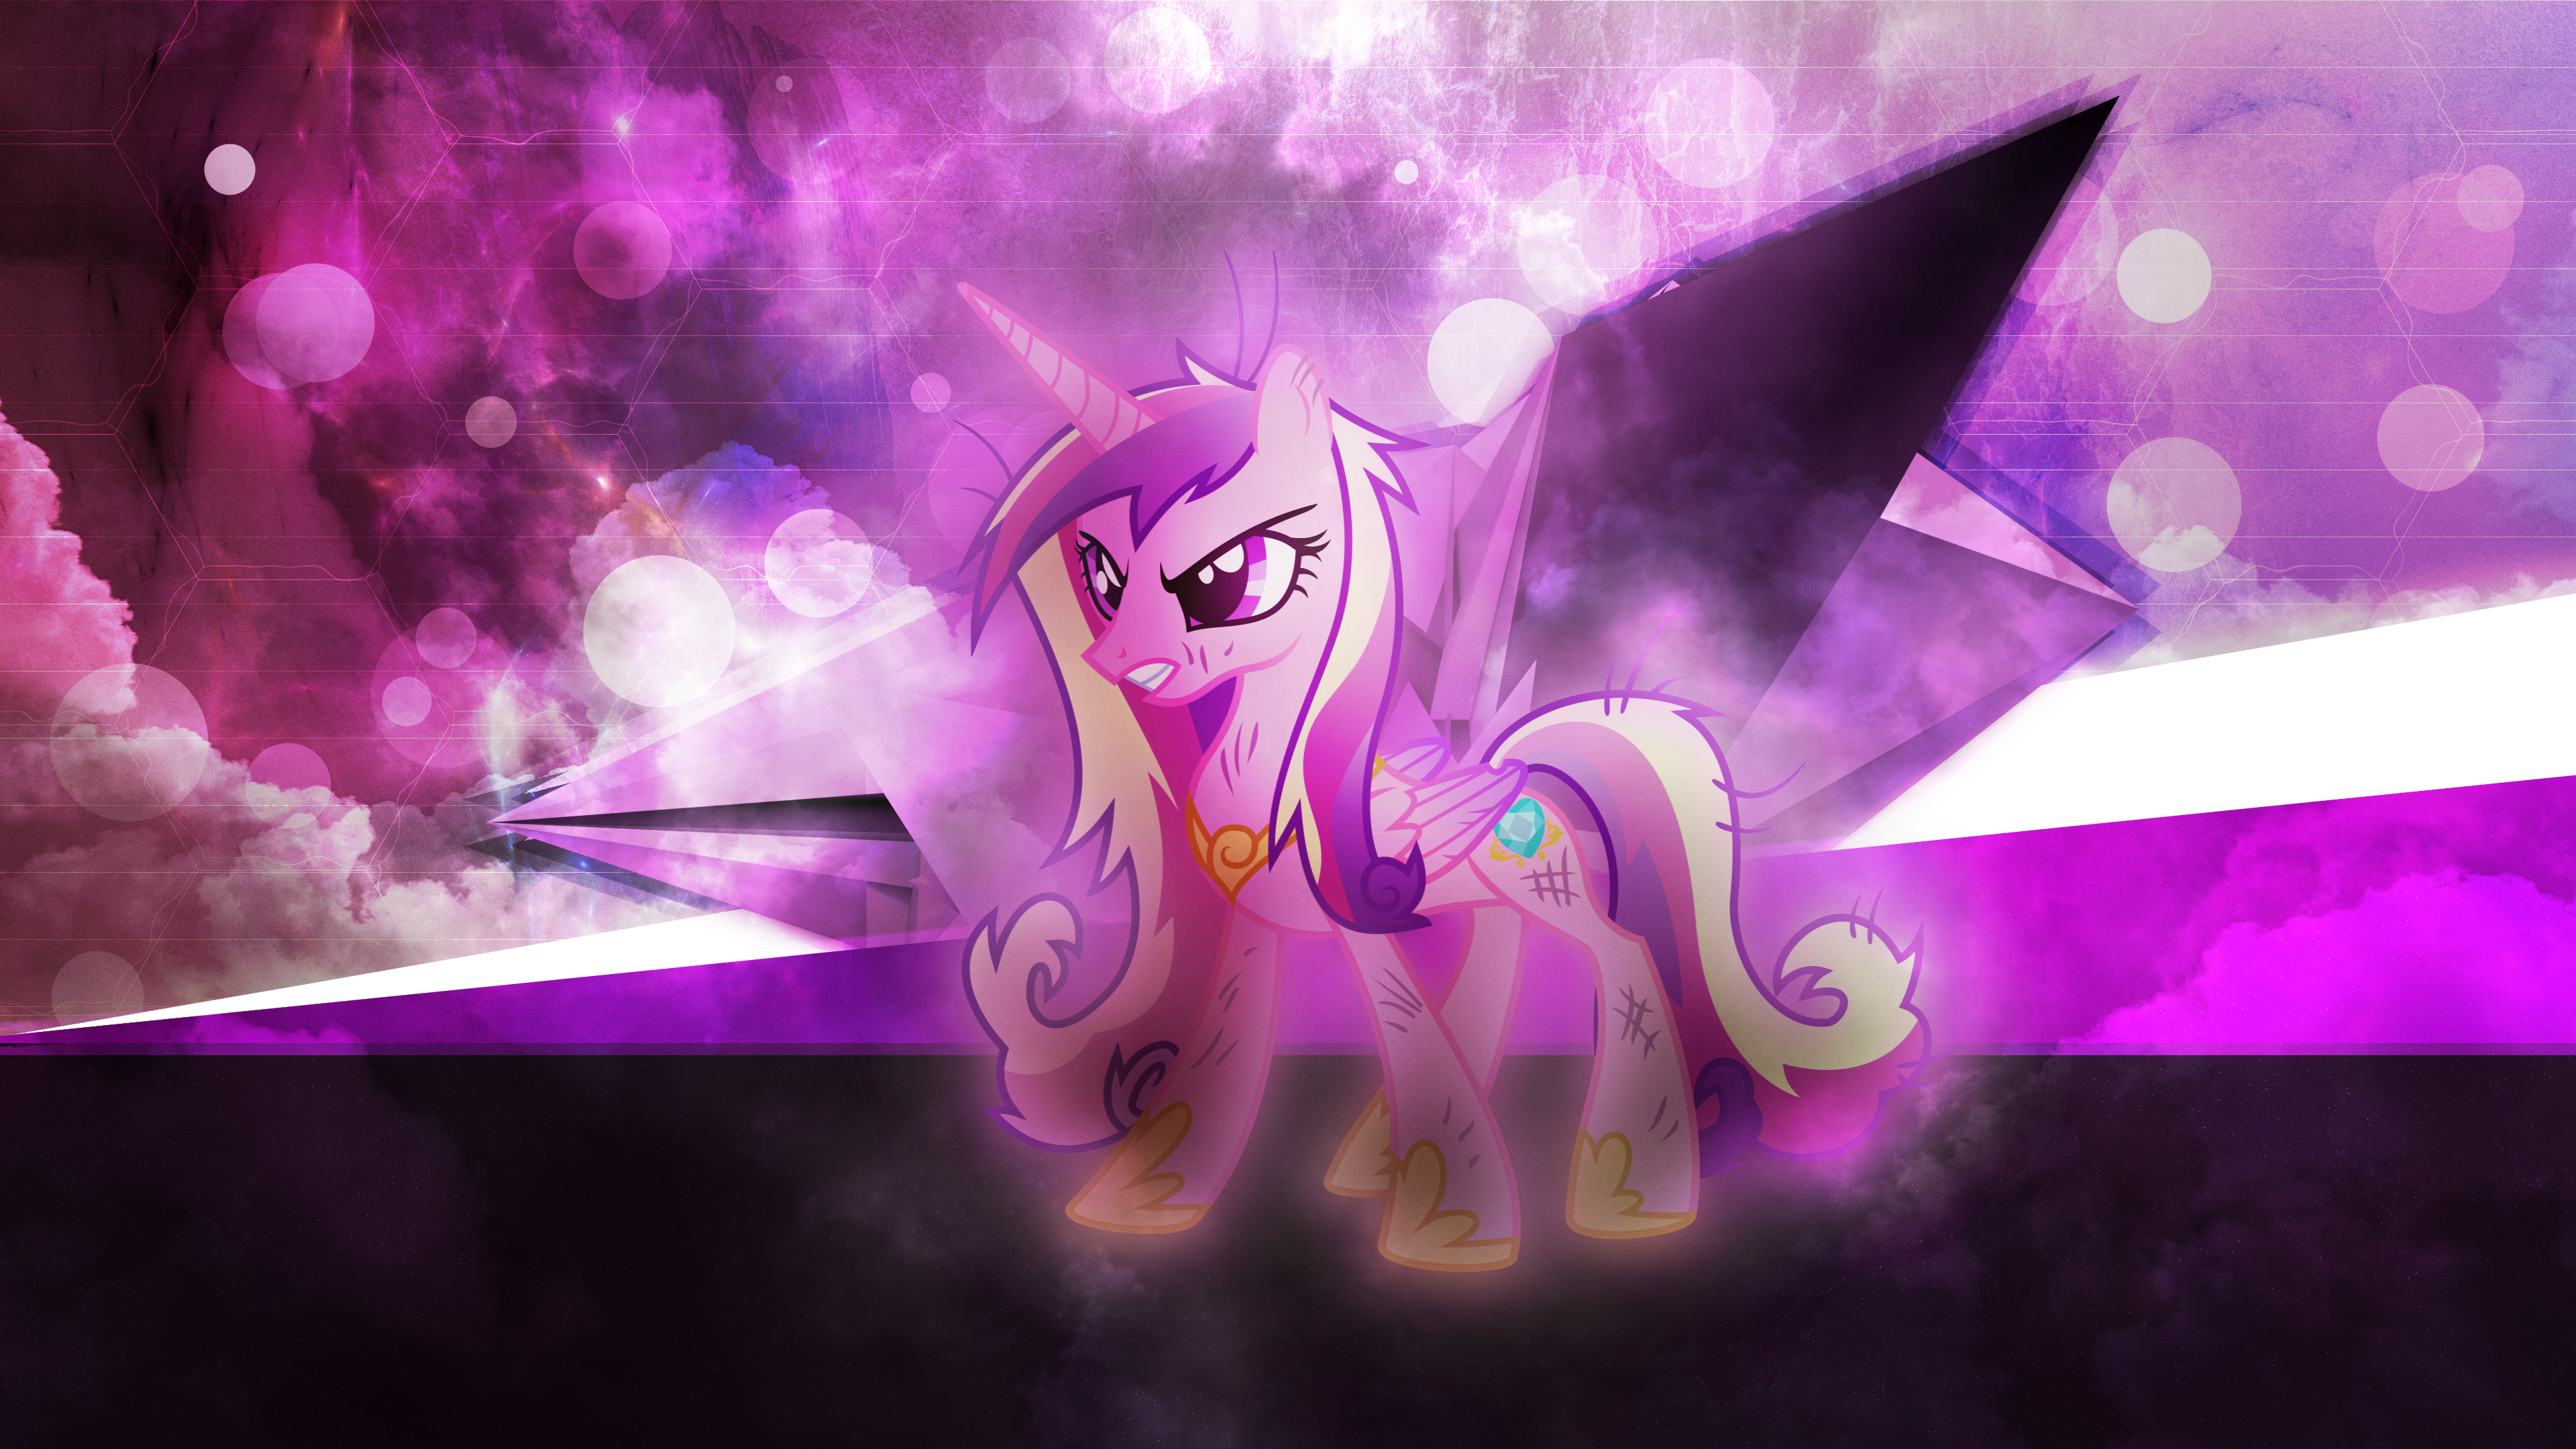 Wrath of Cadance by Game-BeatX14 and Givralix